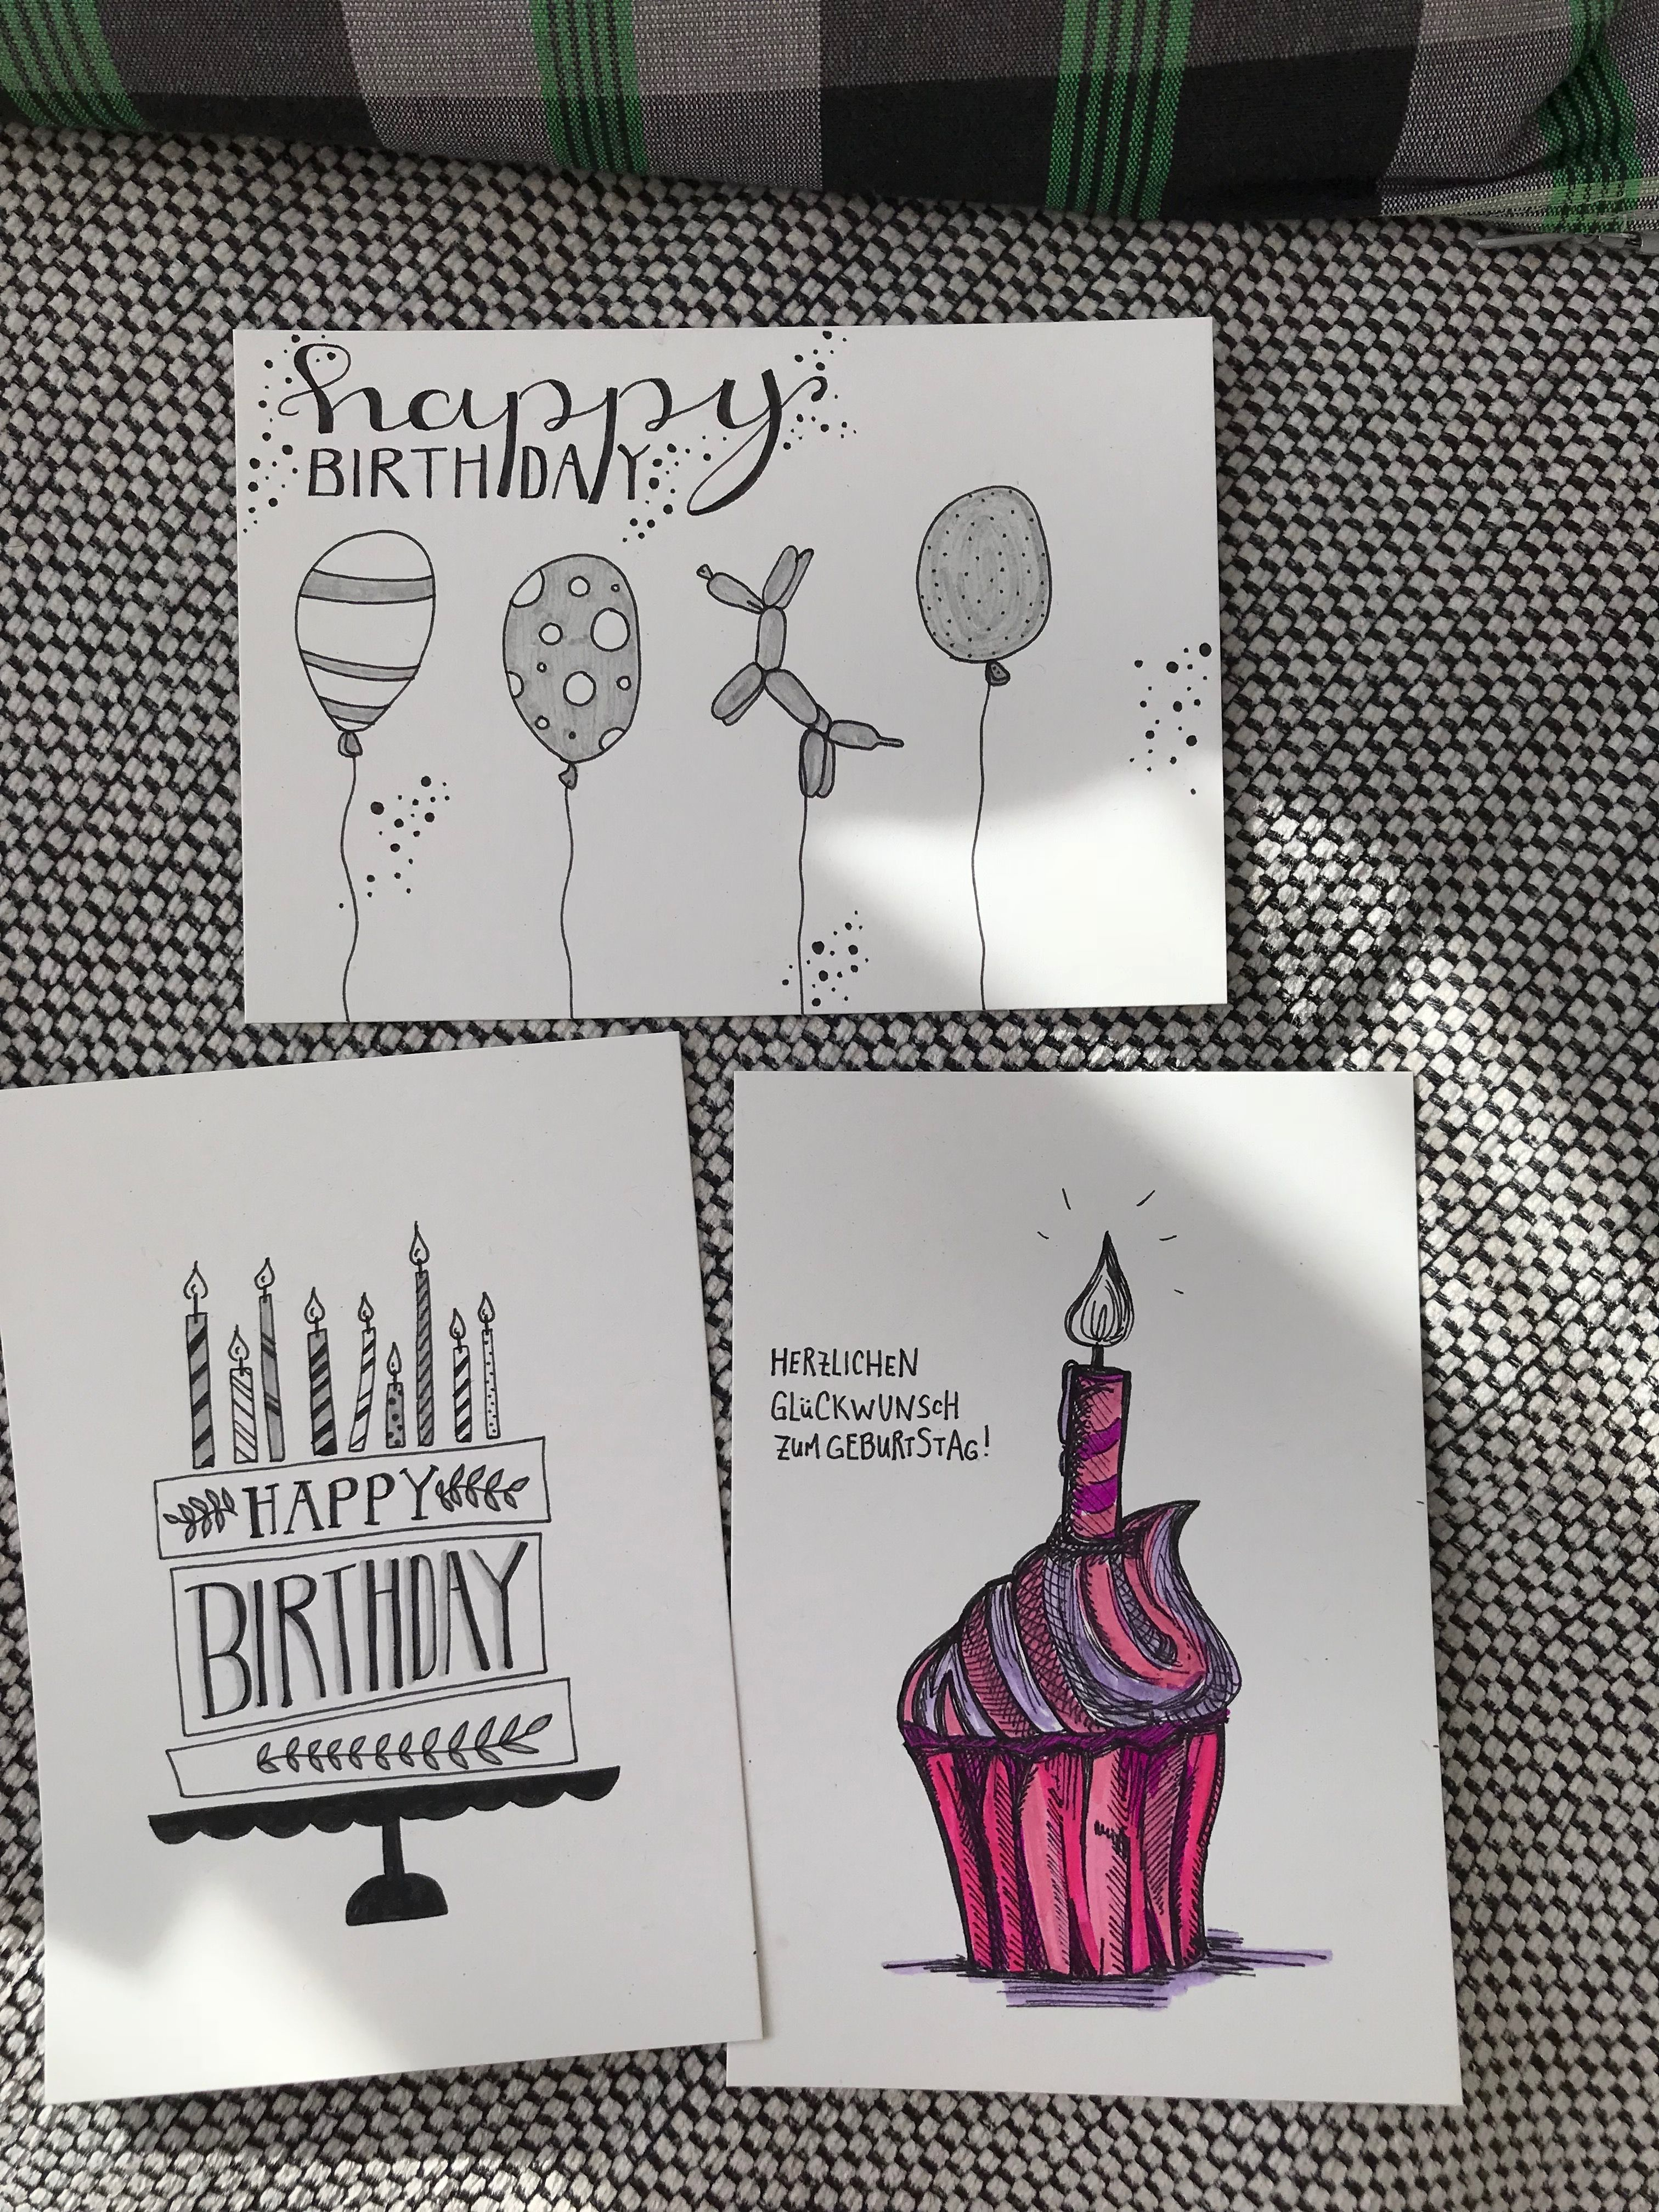 Birthdaycard Happy Birthday Geburtstagskarte Handlettering